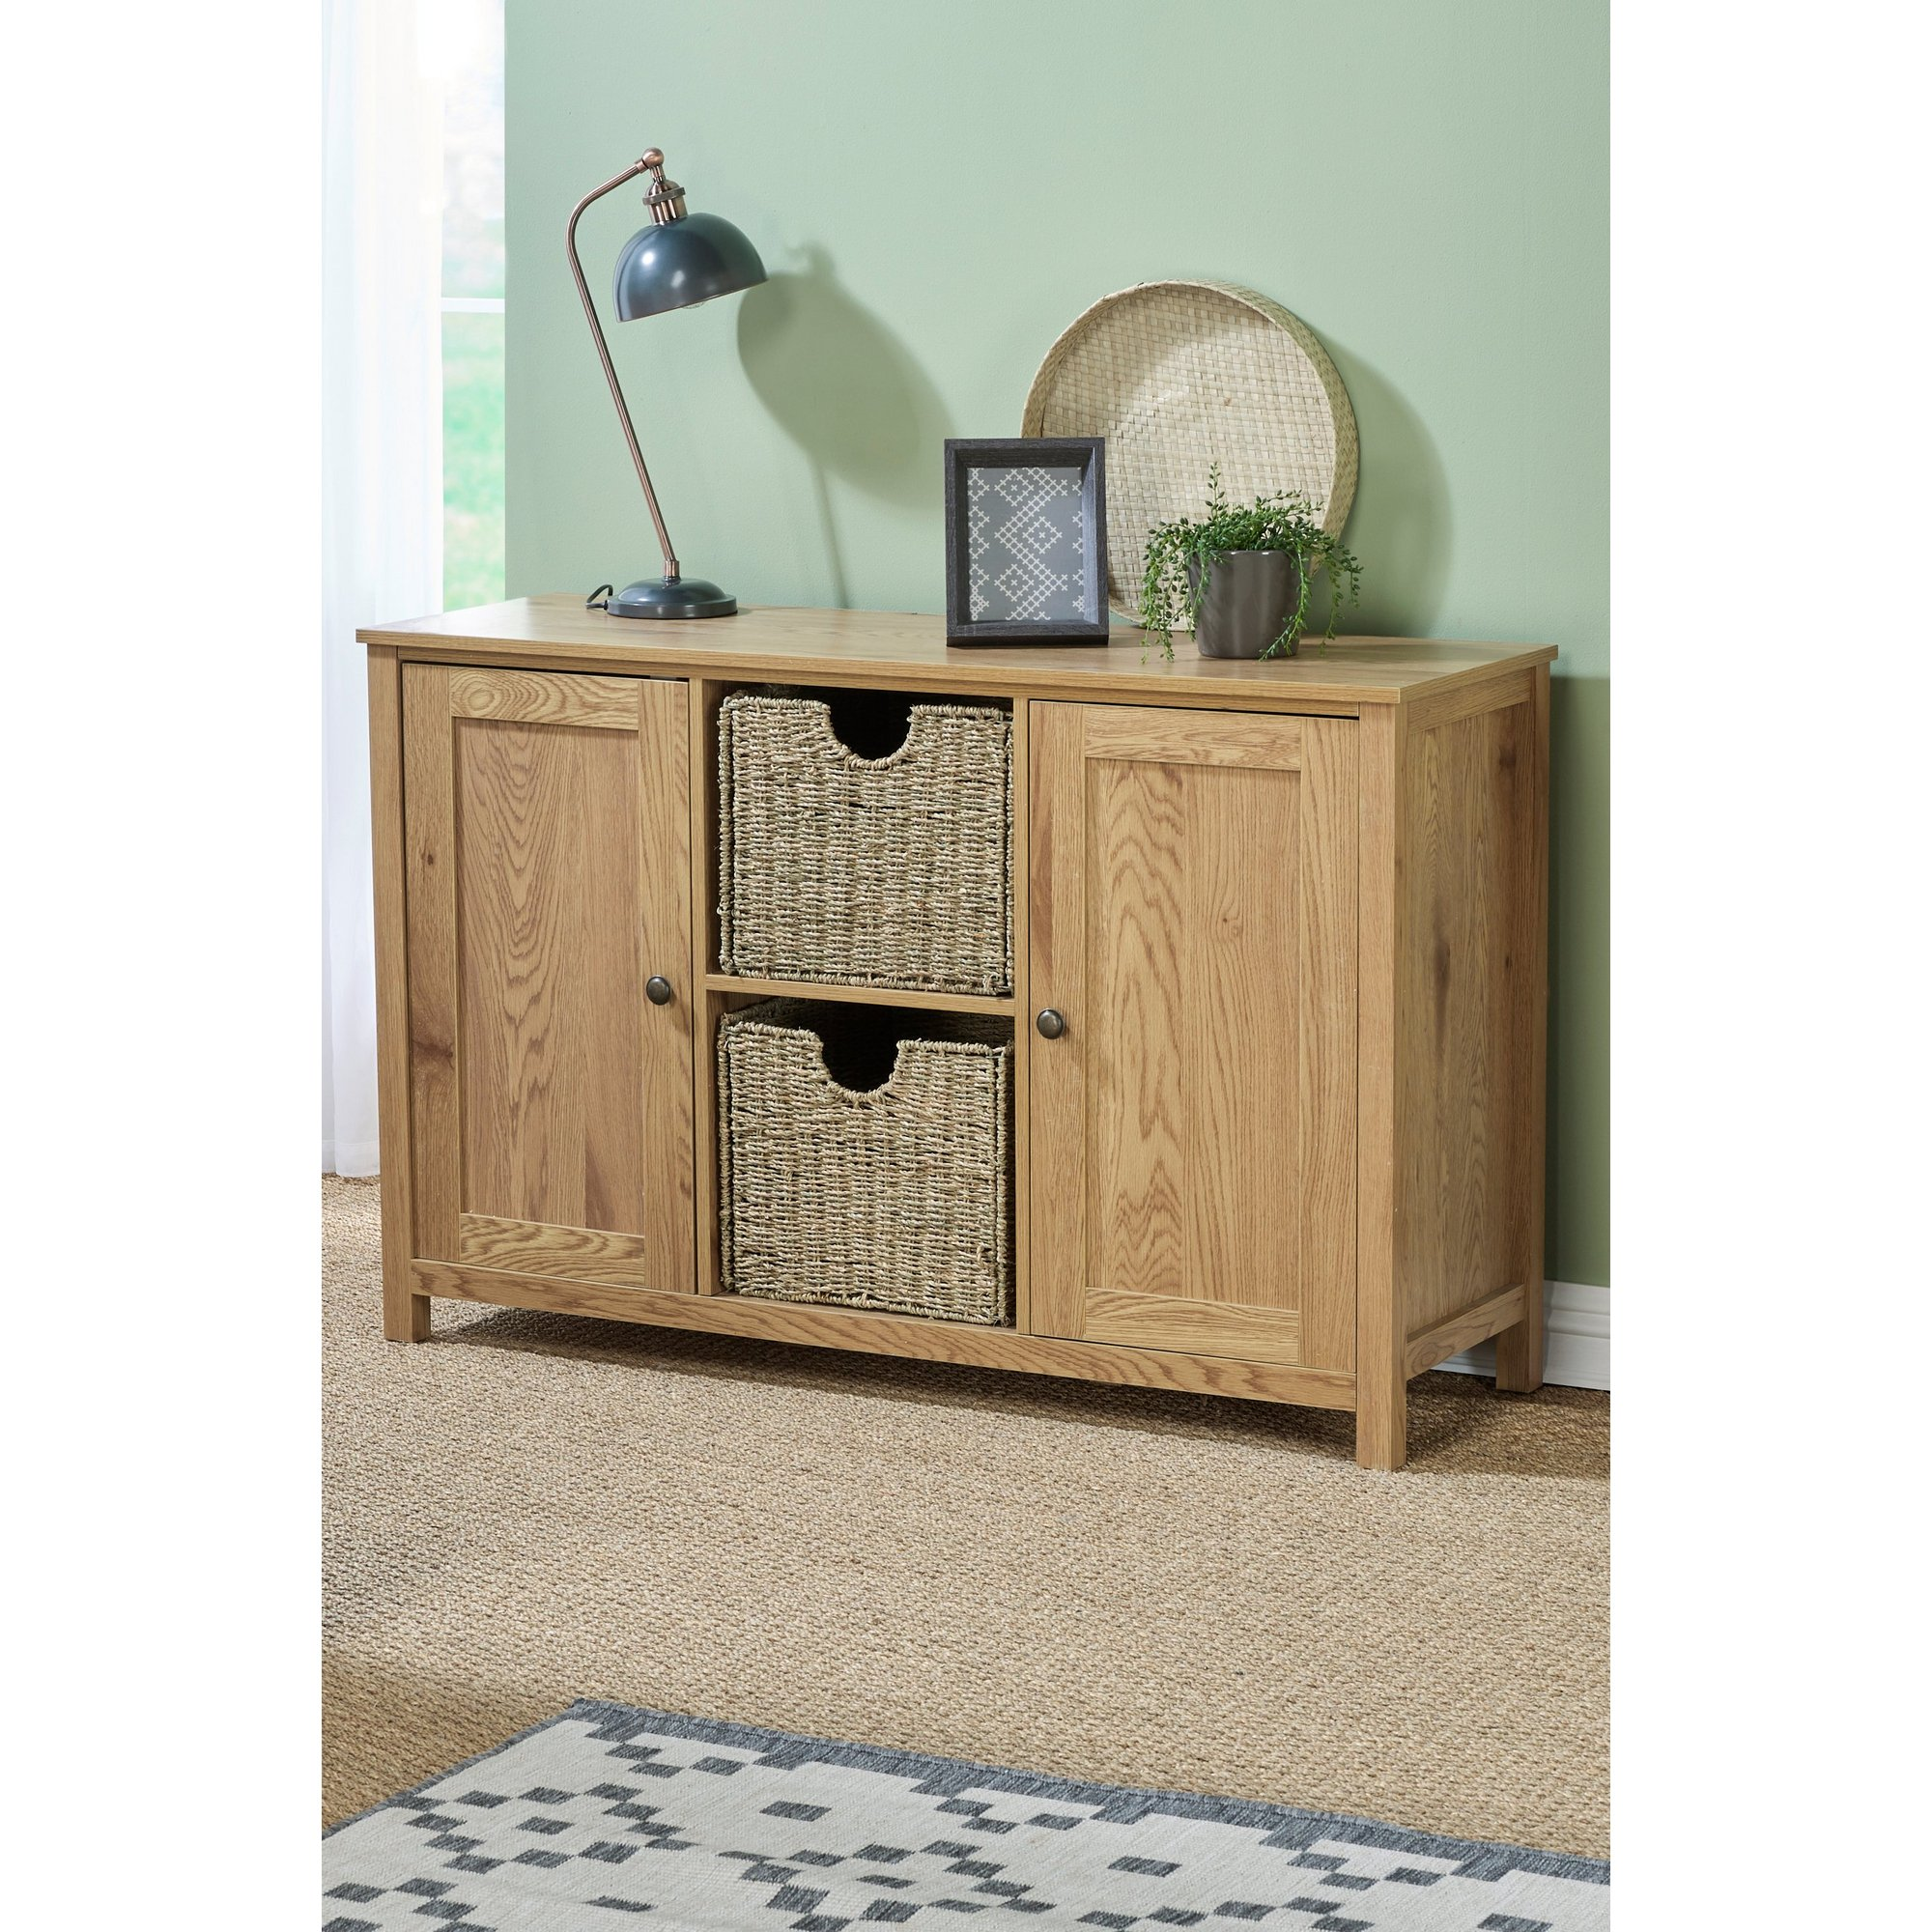 Image of Devon Large Sideboard